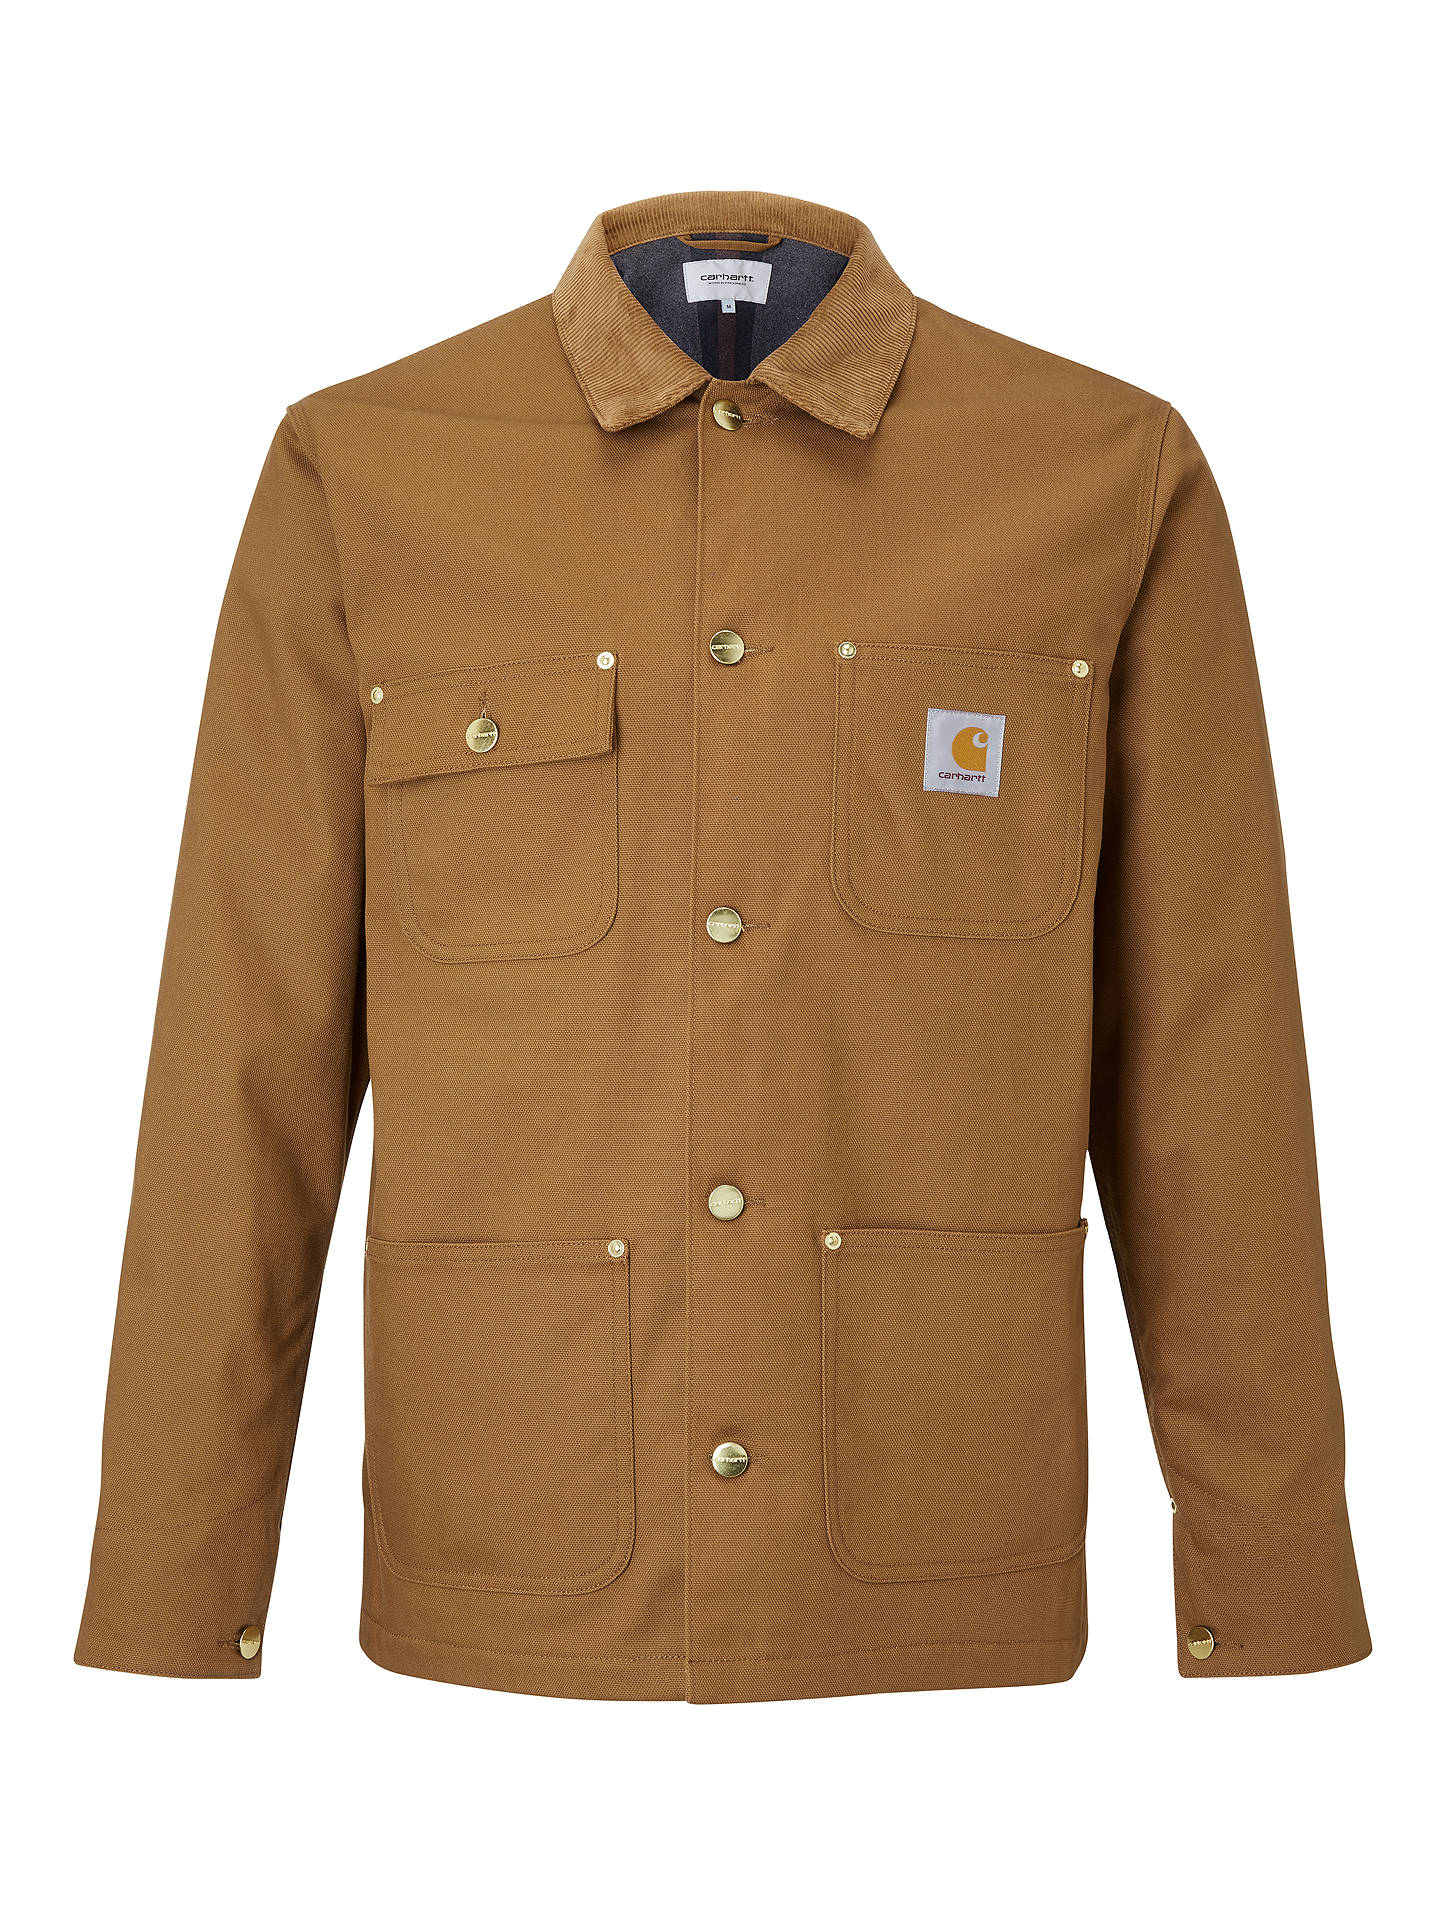 Buy Carhartt WIP Michigan Jacket, Hamilton Brown, S Online at johnlewis.com